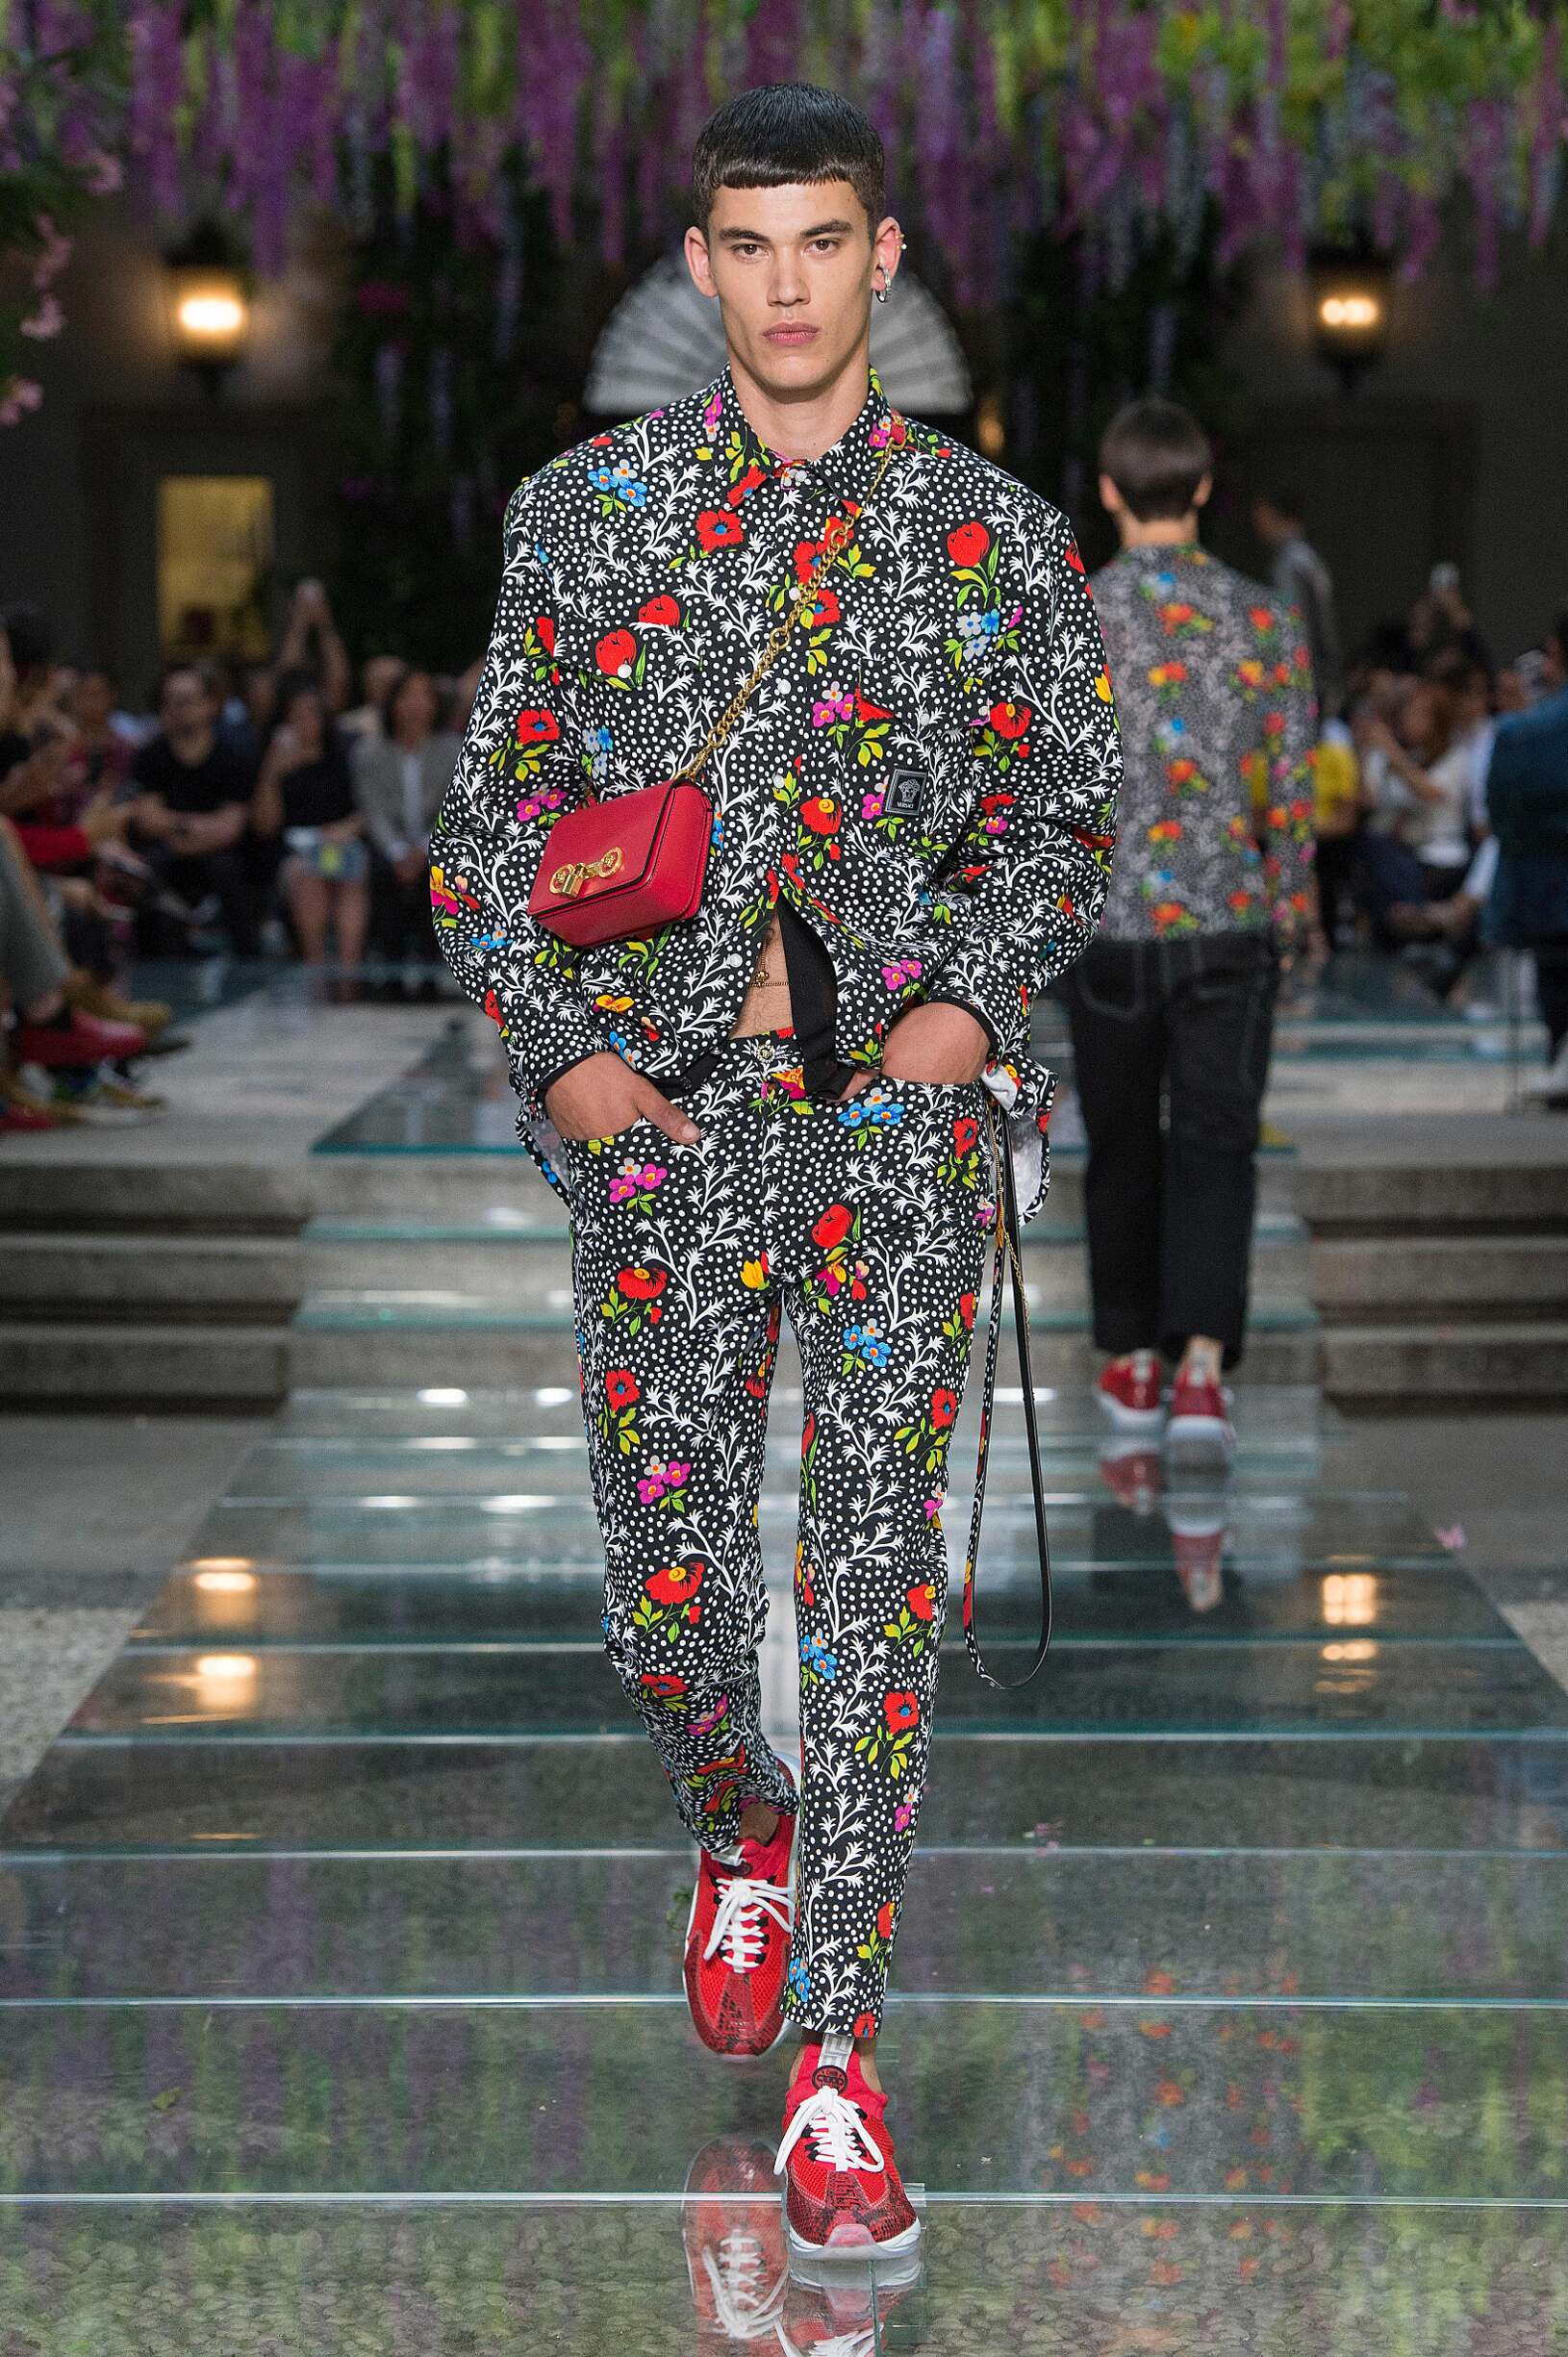 Sommer Looks Versace Spring Summer 2019 Men's Collection | The Skinny Beep